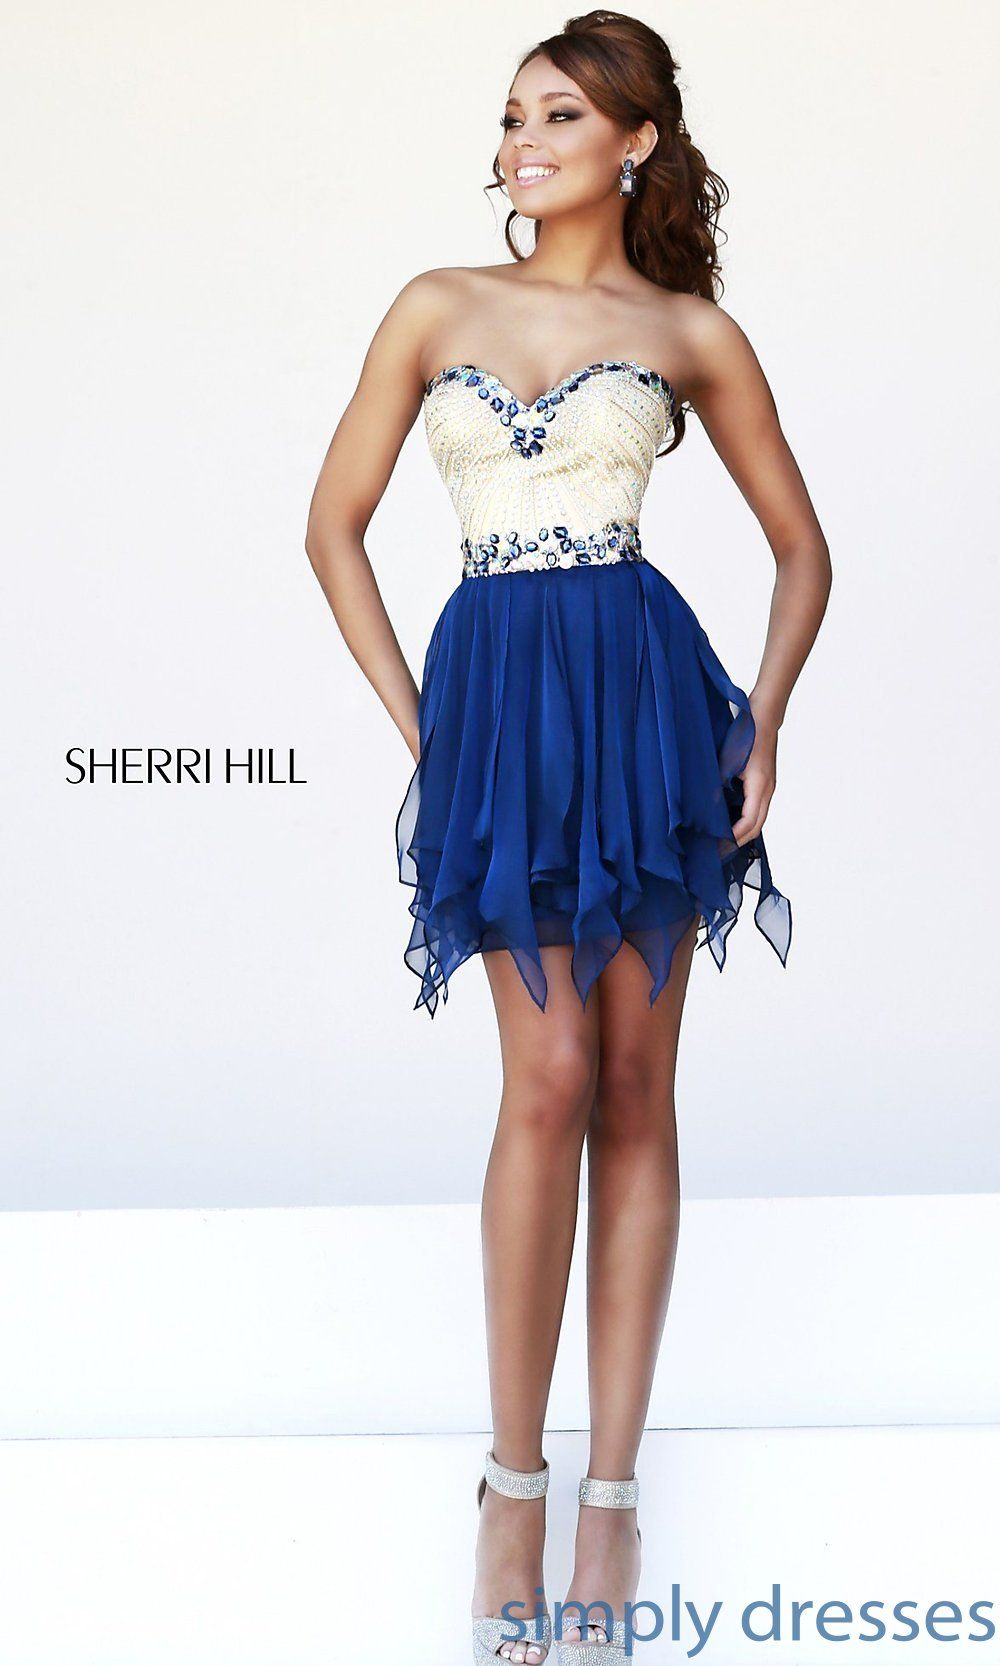 Sherri hill short homecoming dress strapless homecoming dresses